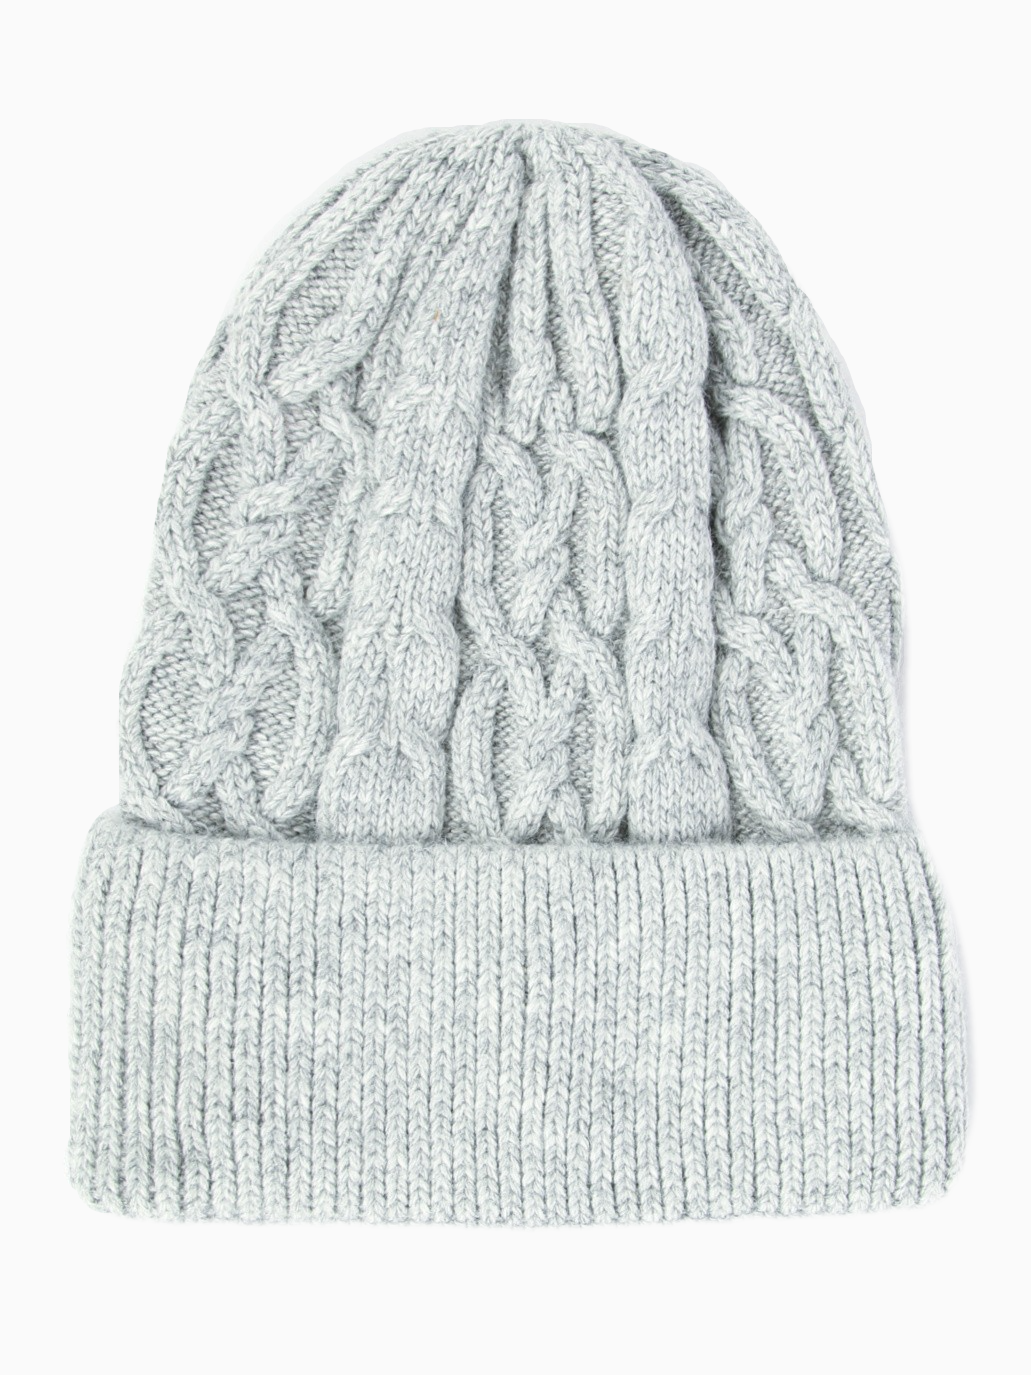 TESS - Cashmere Cable Knit Beanie - Grey